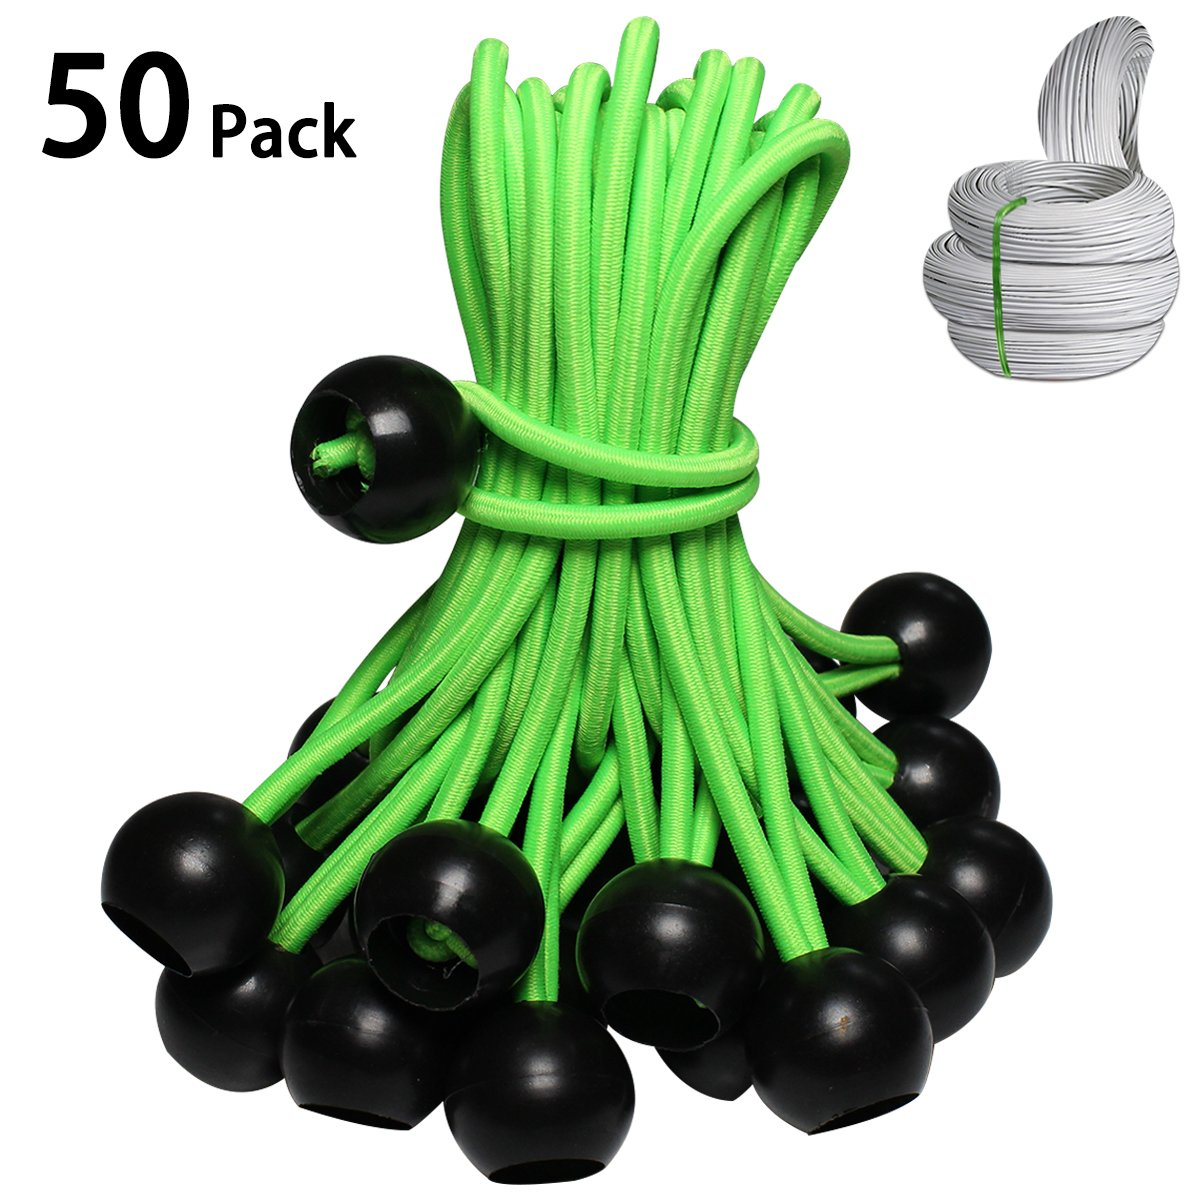 Ball Bungee Cord Premium Heavy Duty Elastic Cords 50 Pack (6 inch)